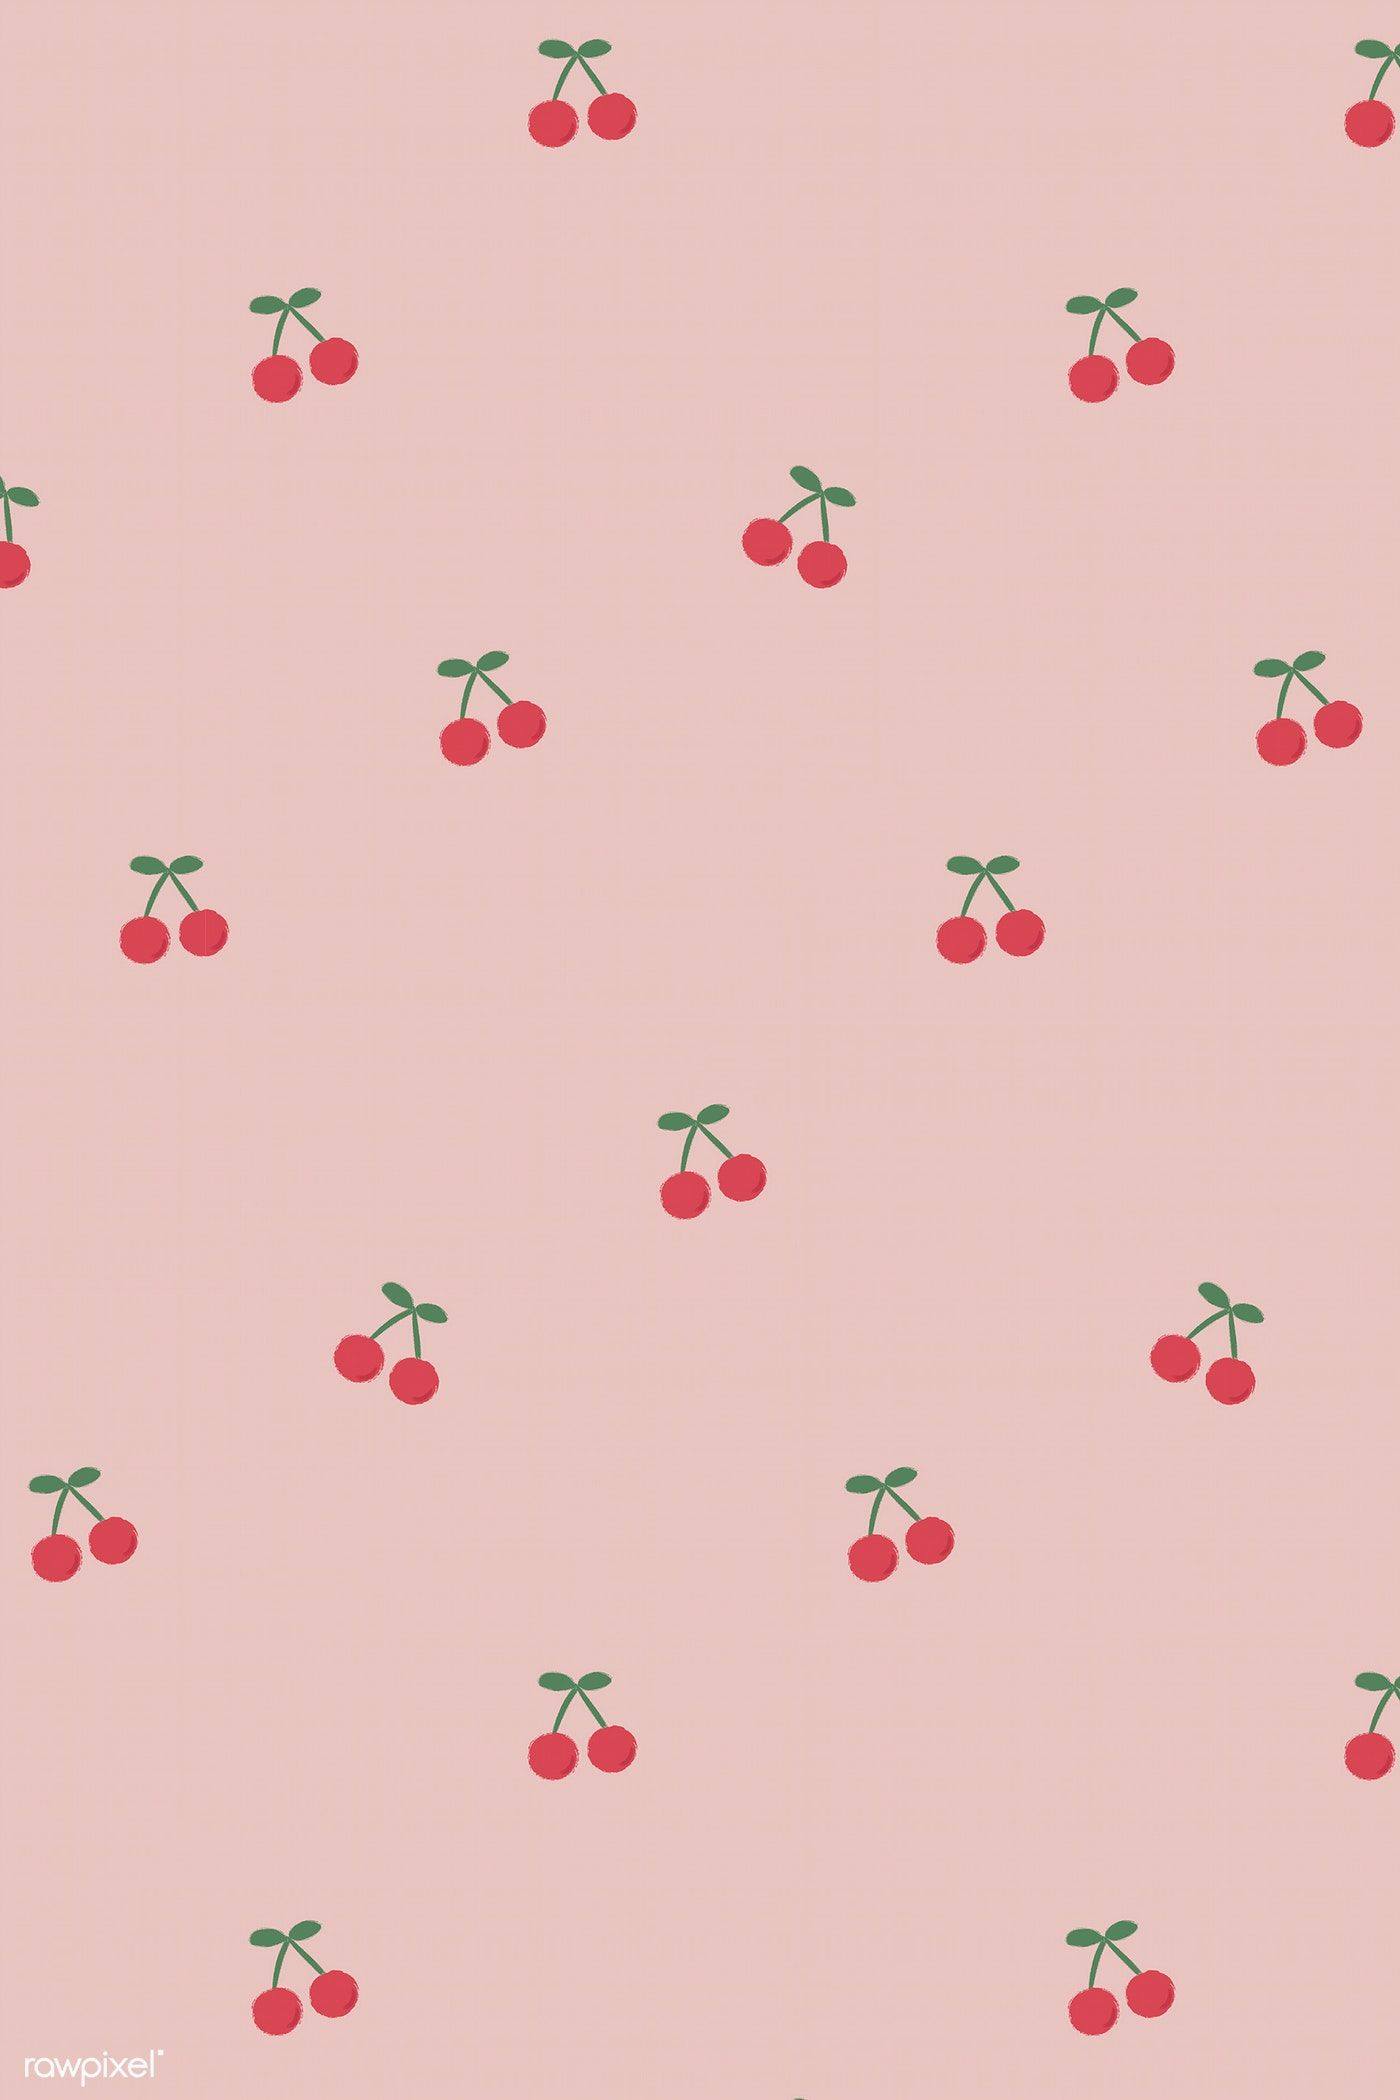 Download Premium Vector Of Red Hand Drawn Cherry Seamless Pattern On Pink Cute Patterns Wallpaper Iphone Background Wallpaper Aesthetic Iphone Wallpaper